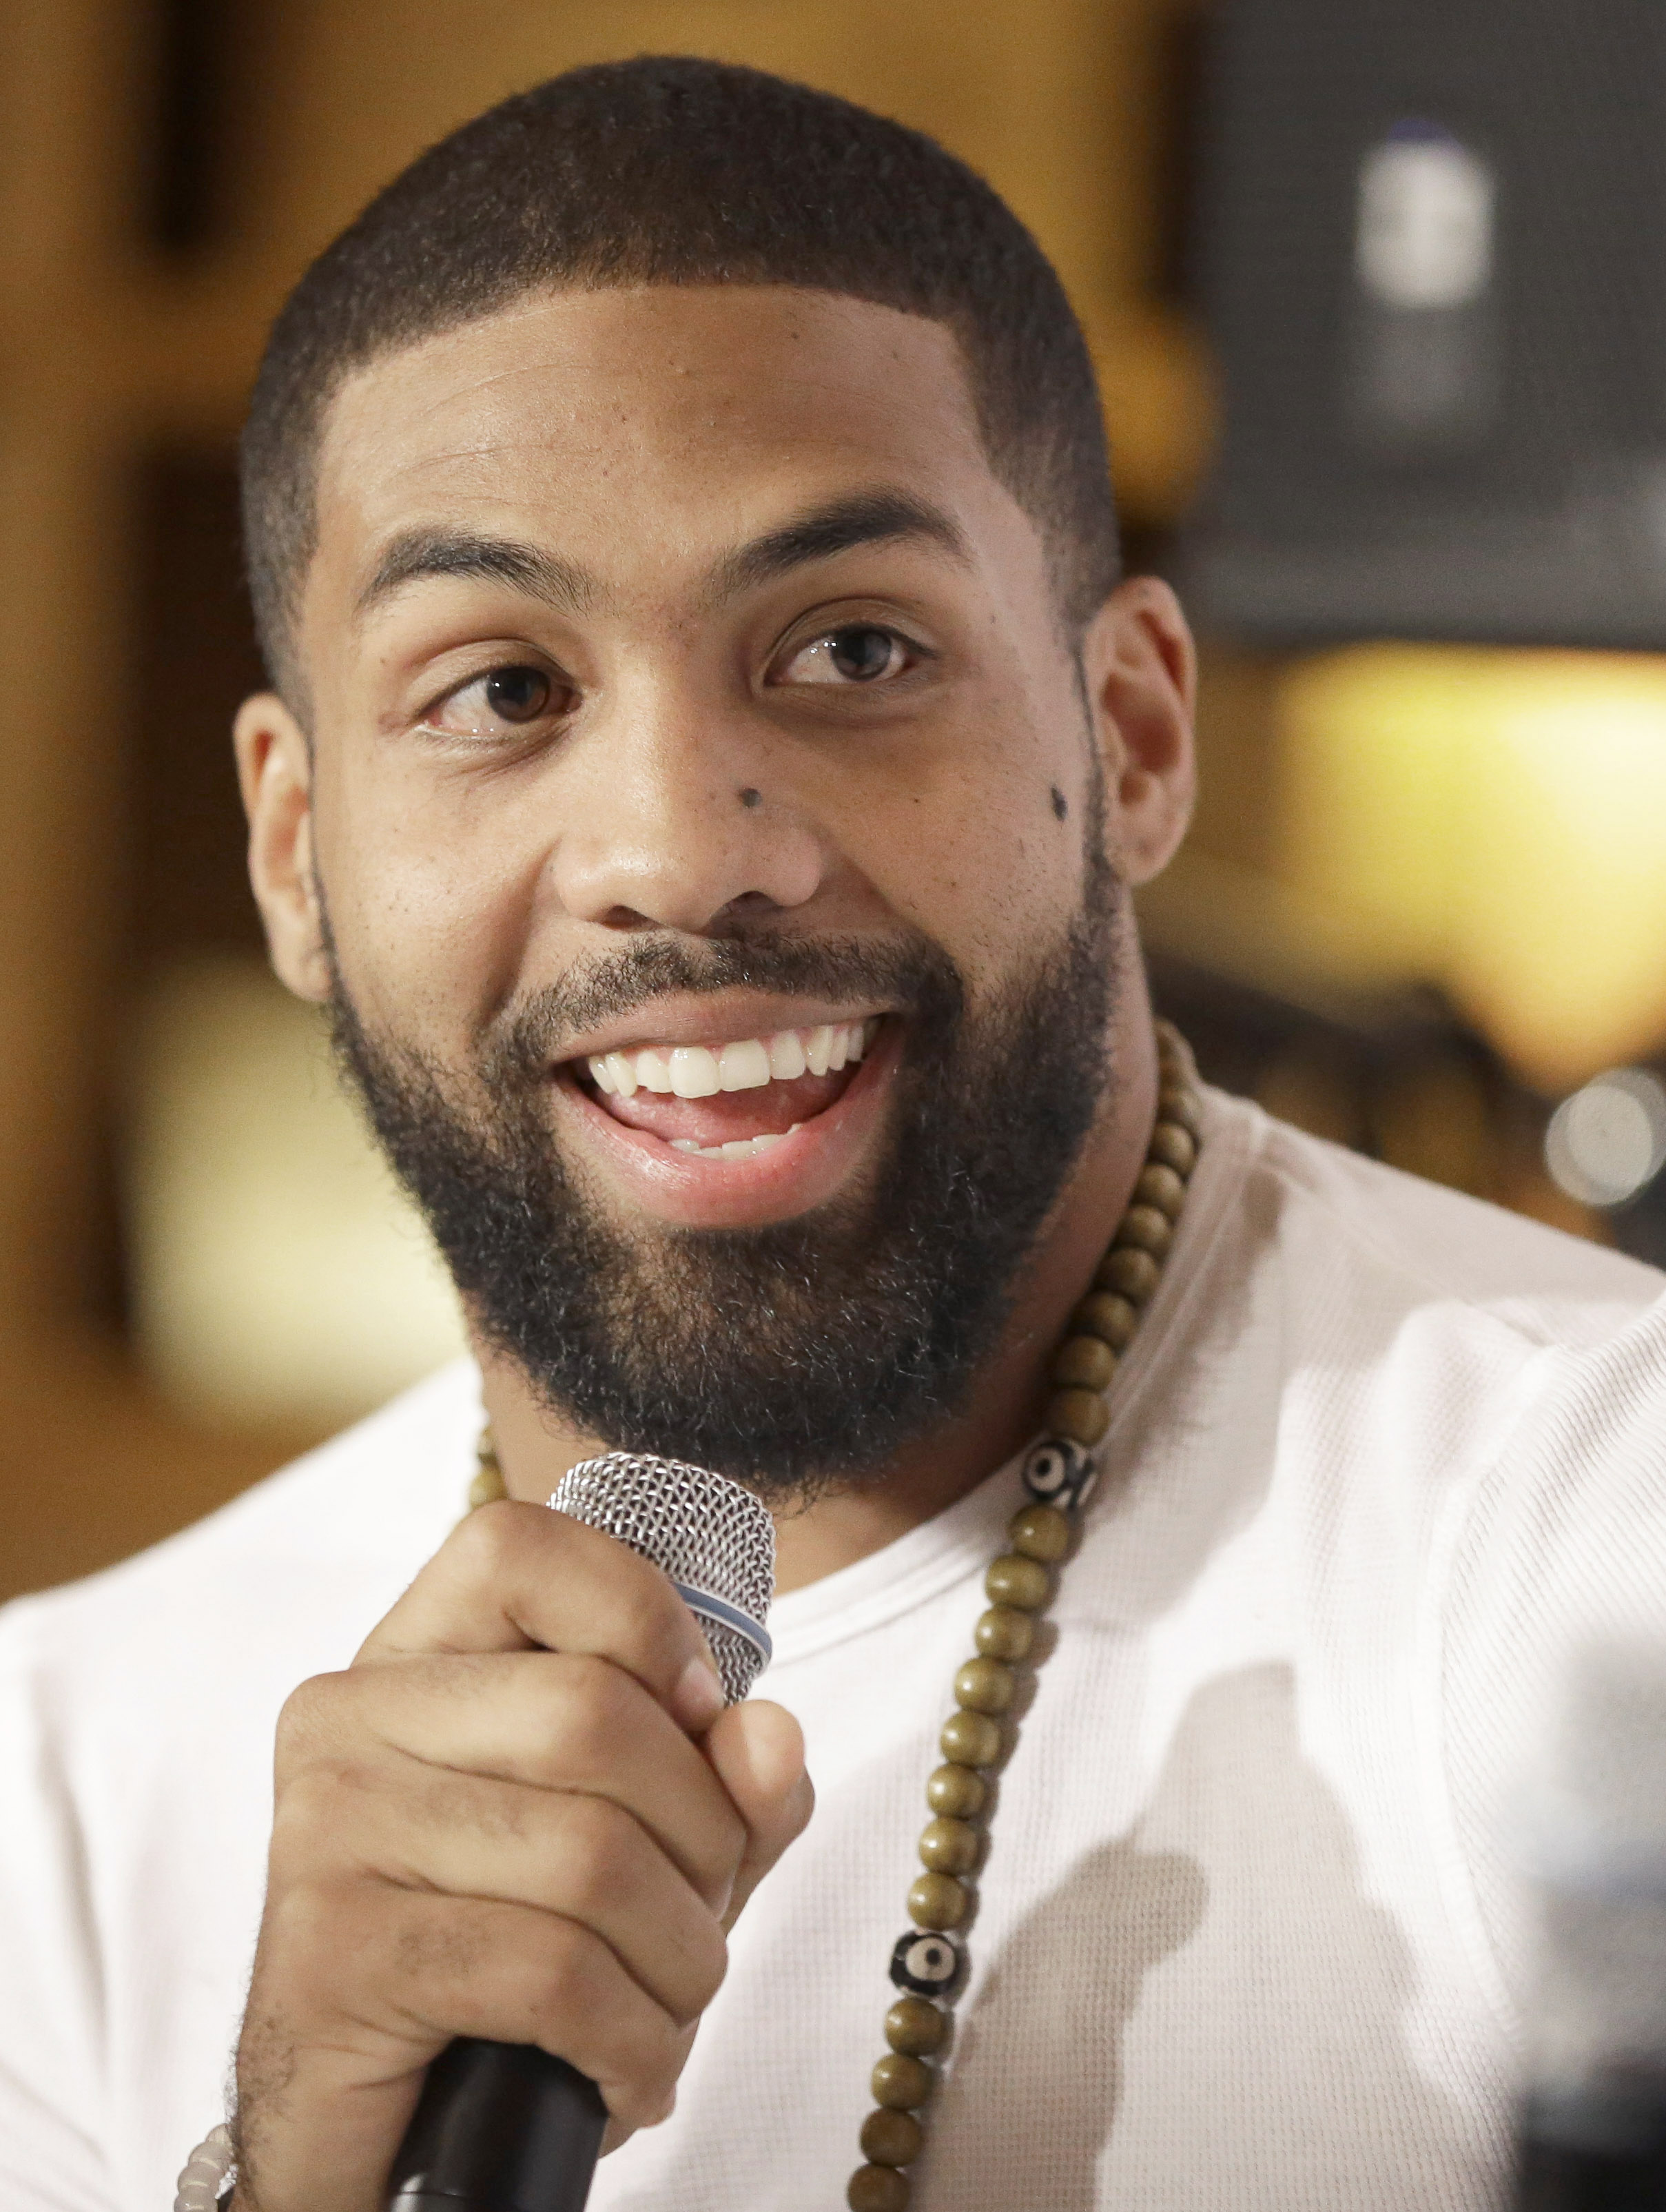 Houston Texans running back Arian Foster laughs as he talks about mental health issues Saturday, Nov. 21, 2015, in Houston. Foster has joined New York Jets receiver Brandon Marshalls PROJECT 375, a nonprofit organization dedicated to eradicating the stigm